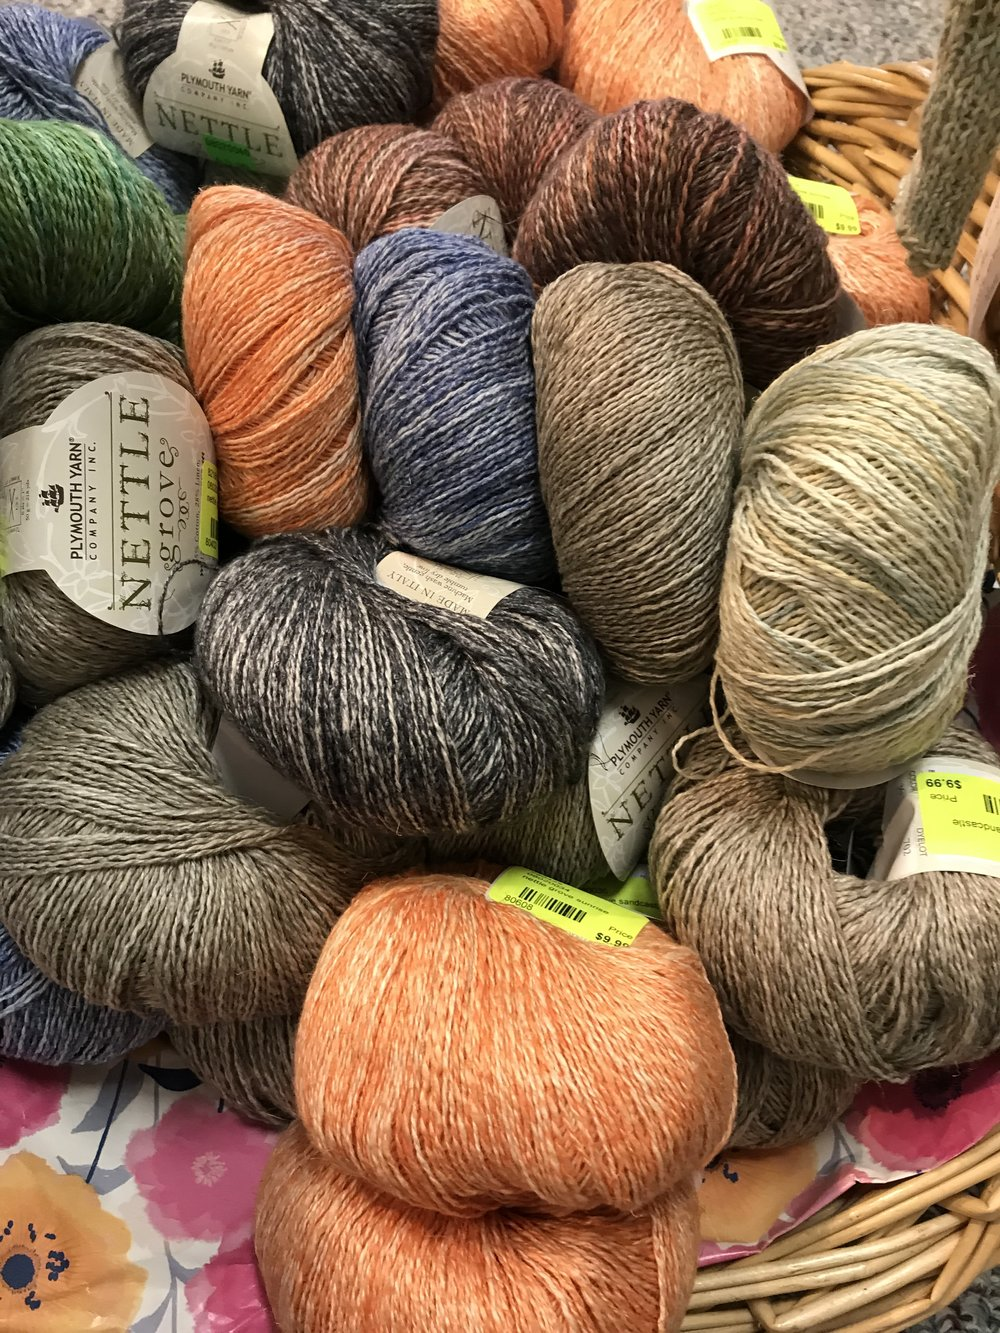 Nettle Grove   - Yes, nettle fiber blended with cotton, linen, and silk makes this is easy and satisfying to knit with on its own or blended with another lightweight yarn.